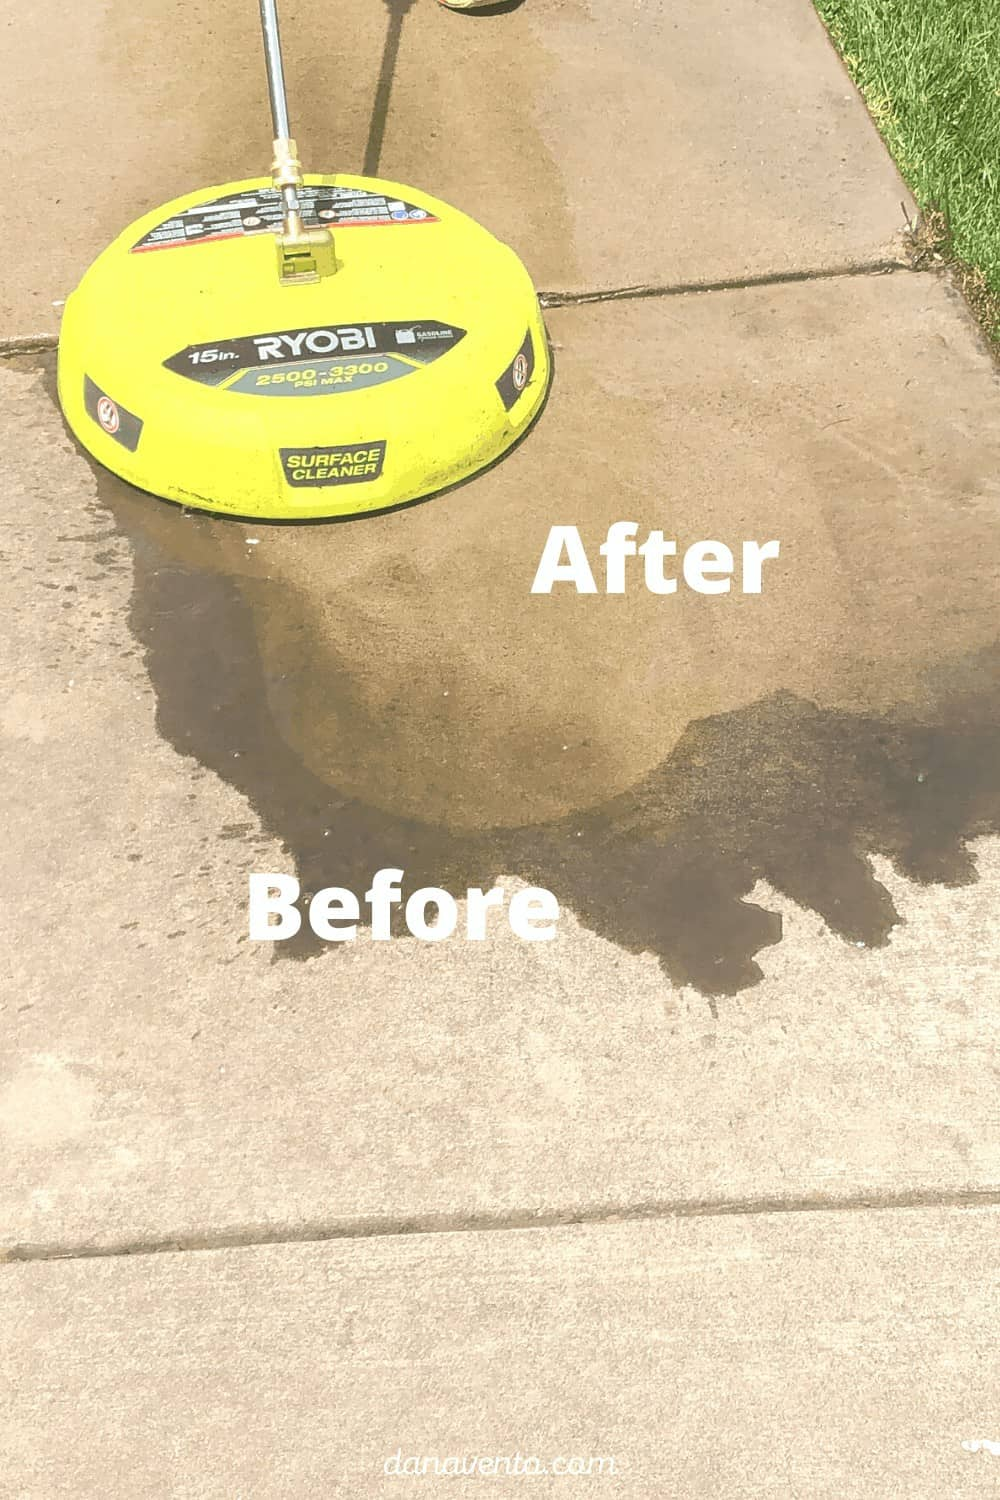 sidewalk with surface cleaner by RYOBI